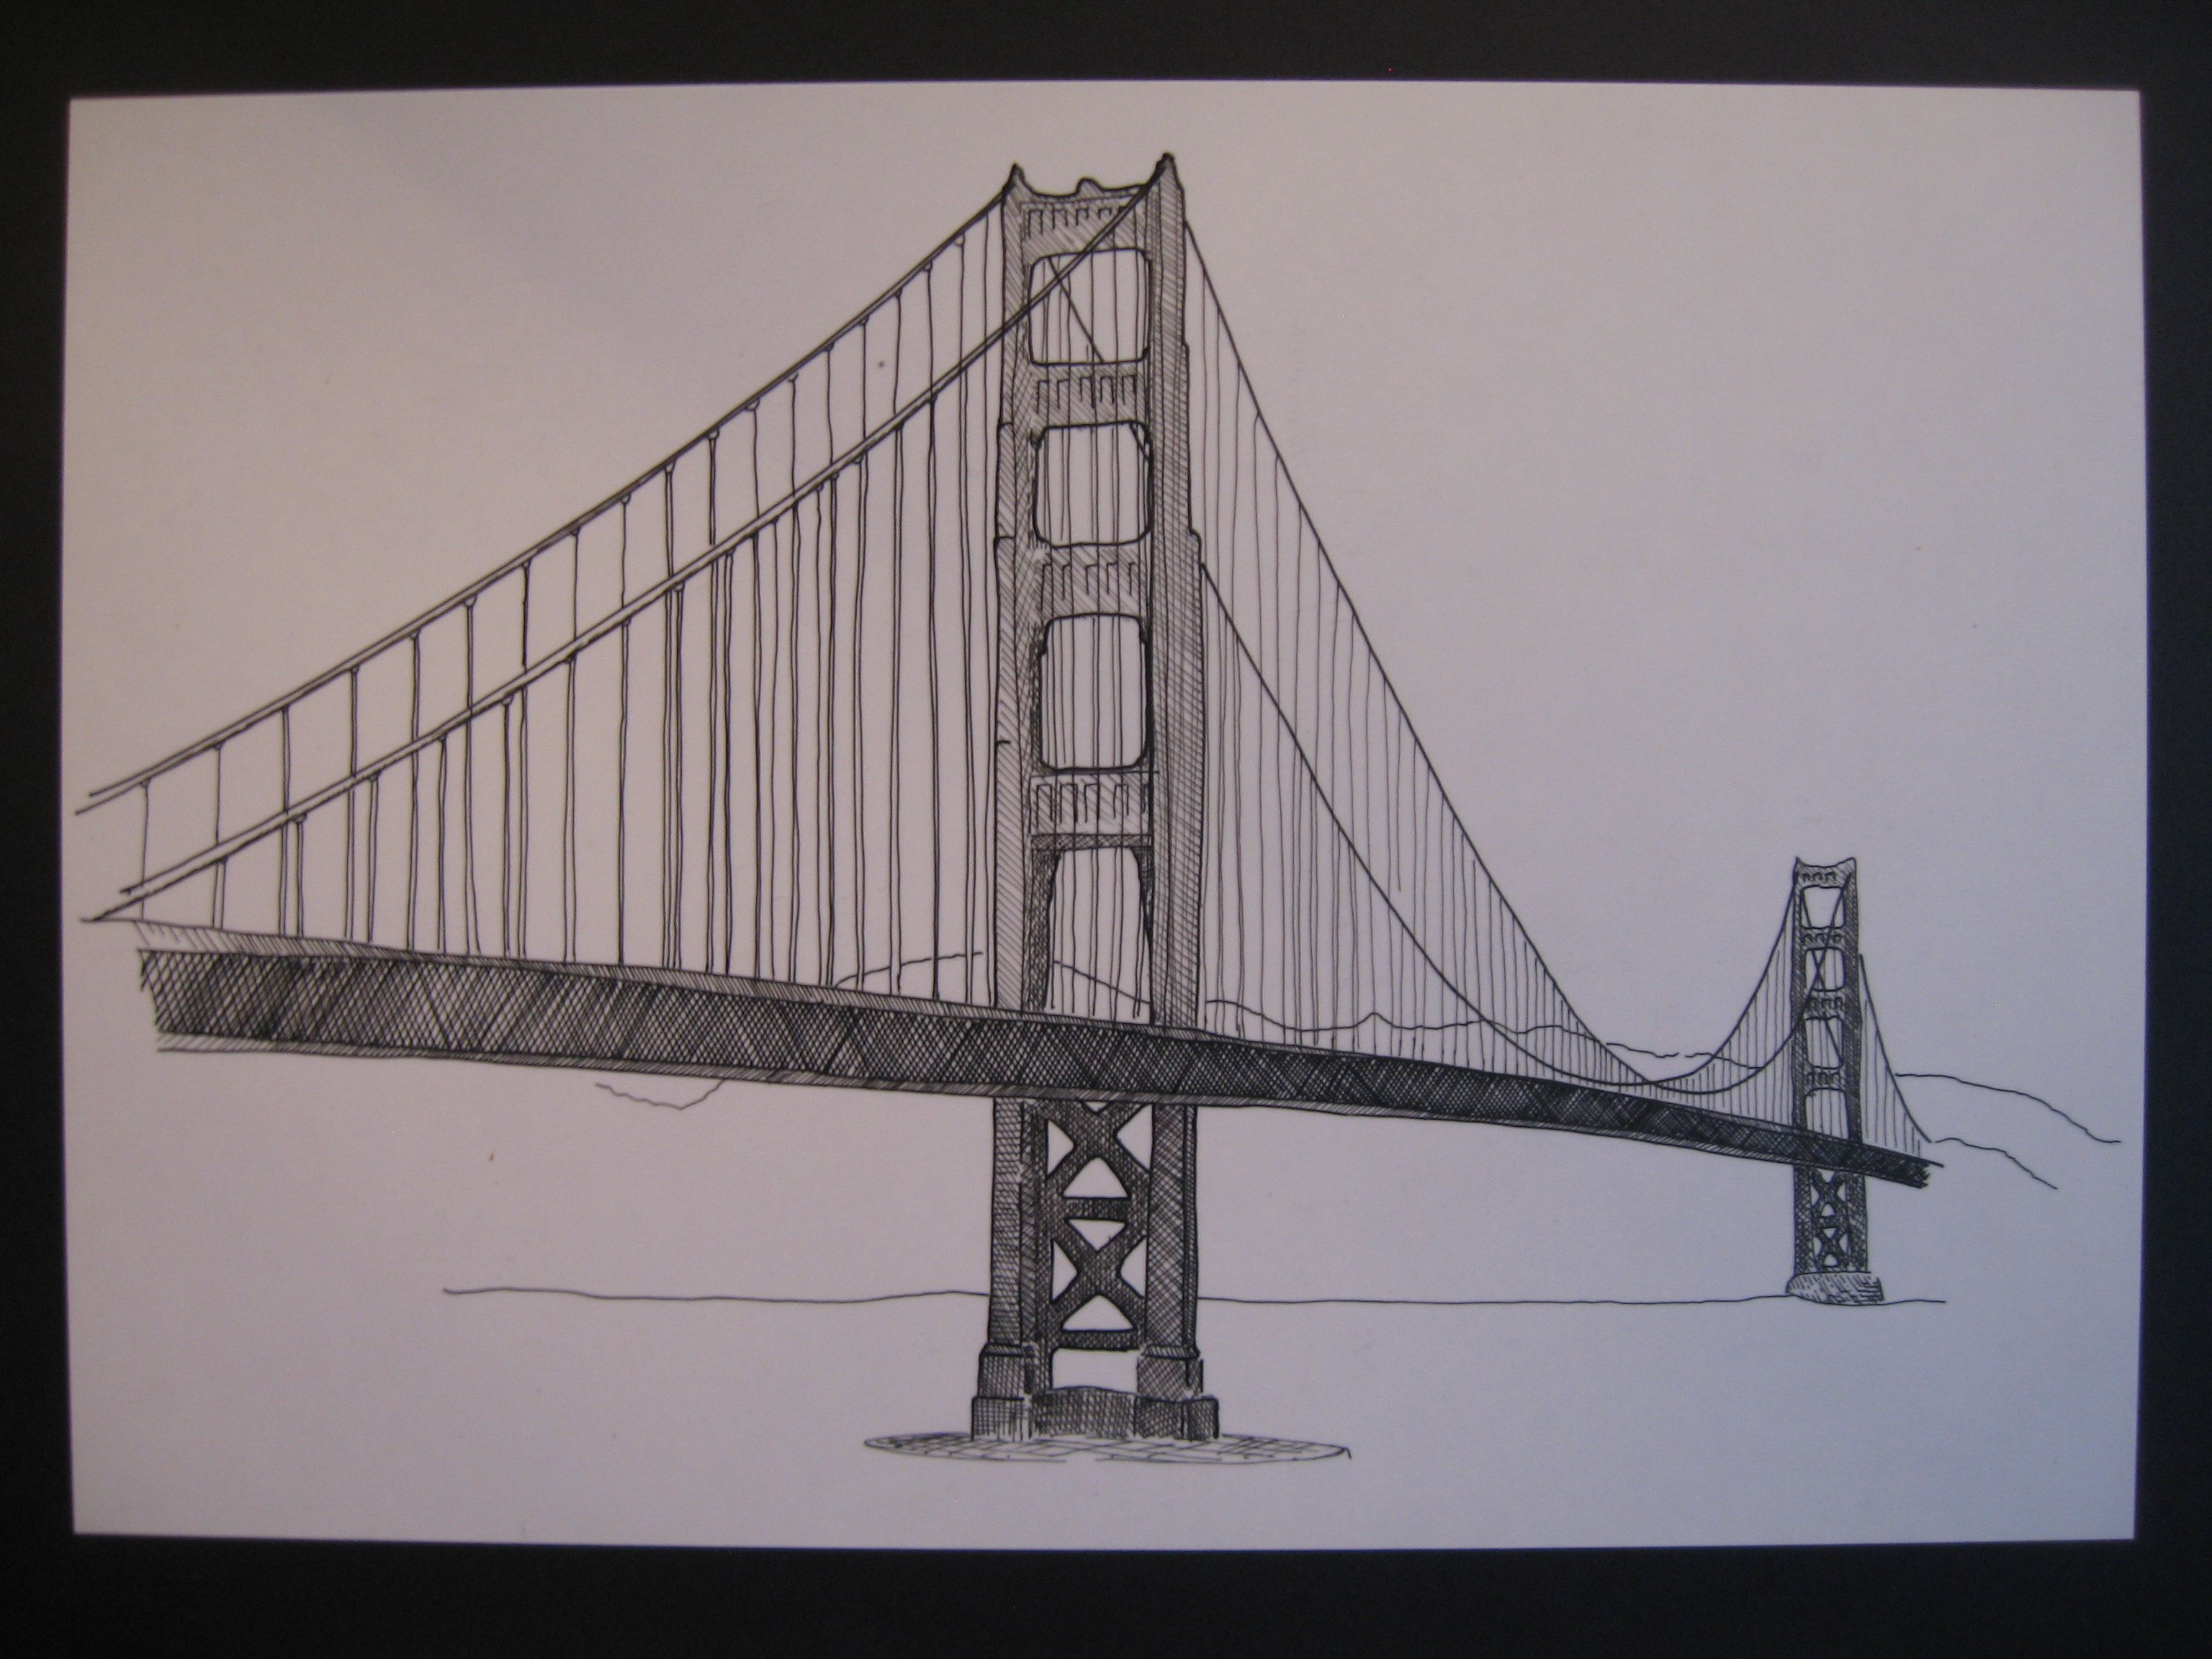 3072x2304 Drawings Bridges Amp Buildings Amp Cephalopods Oh My